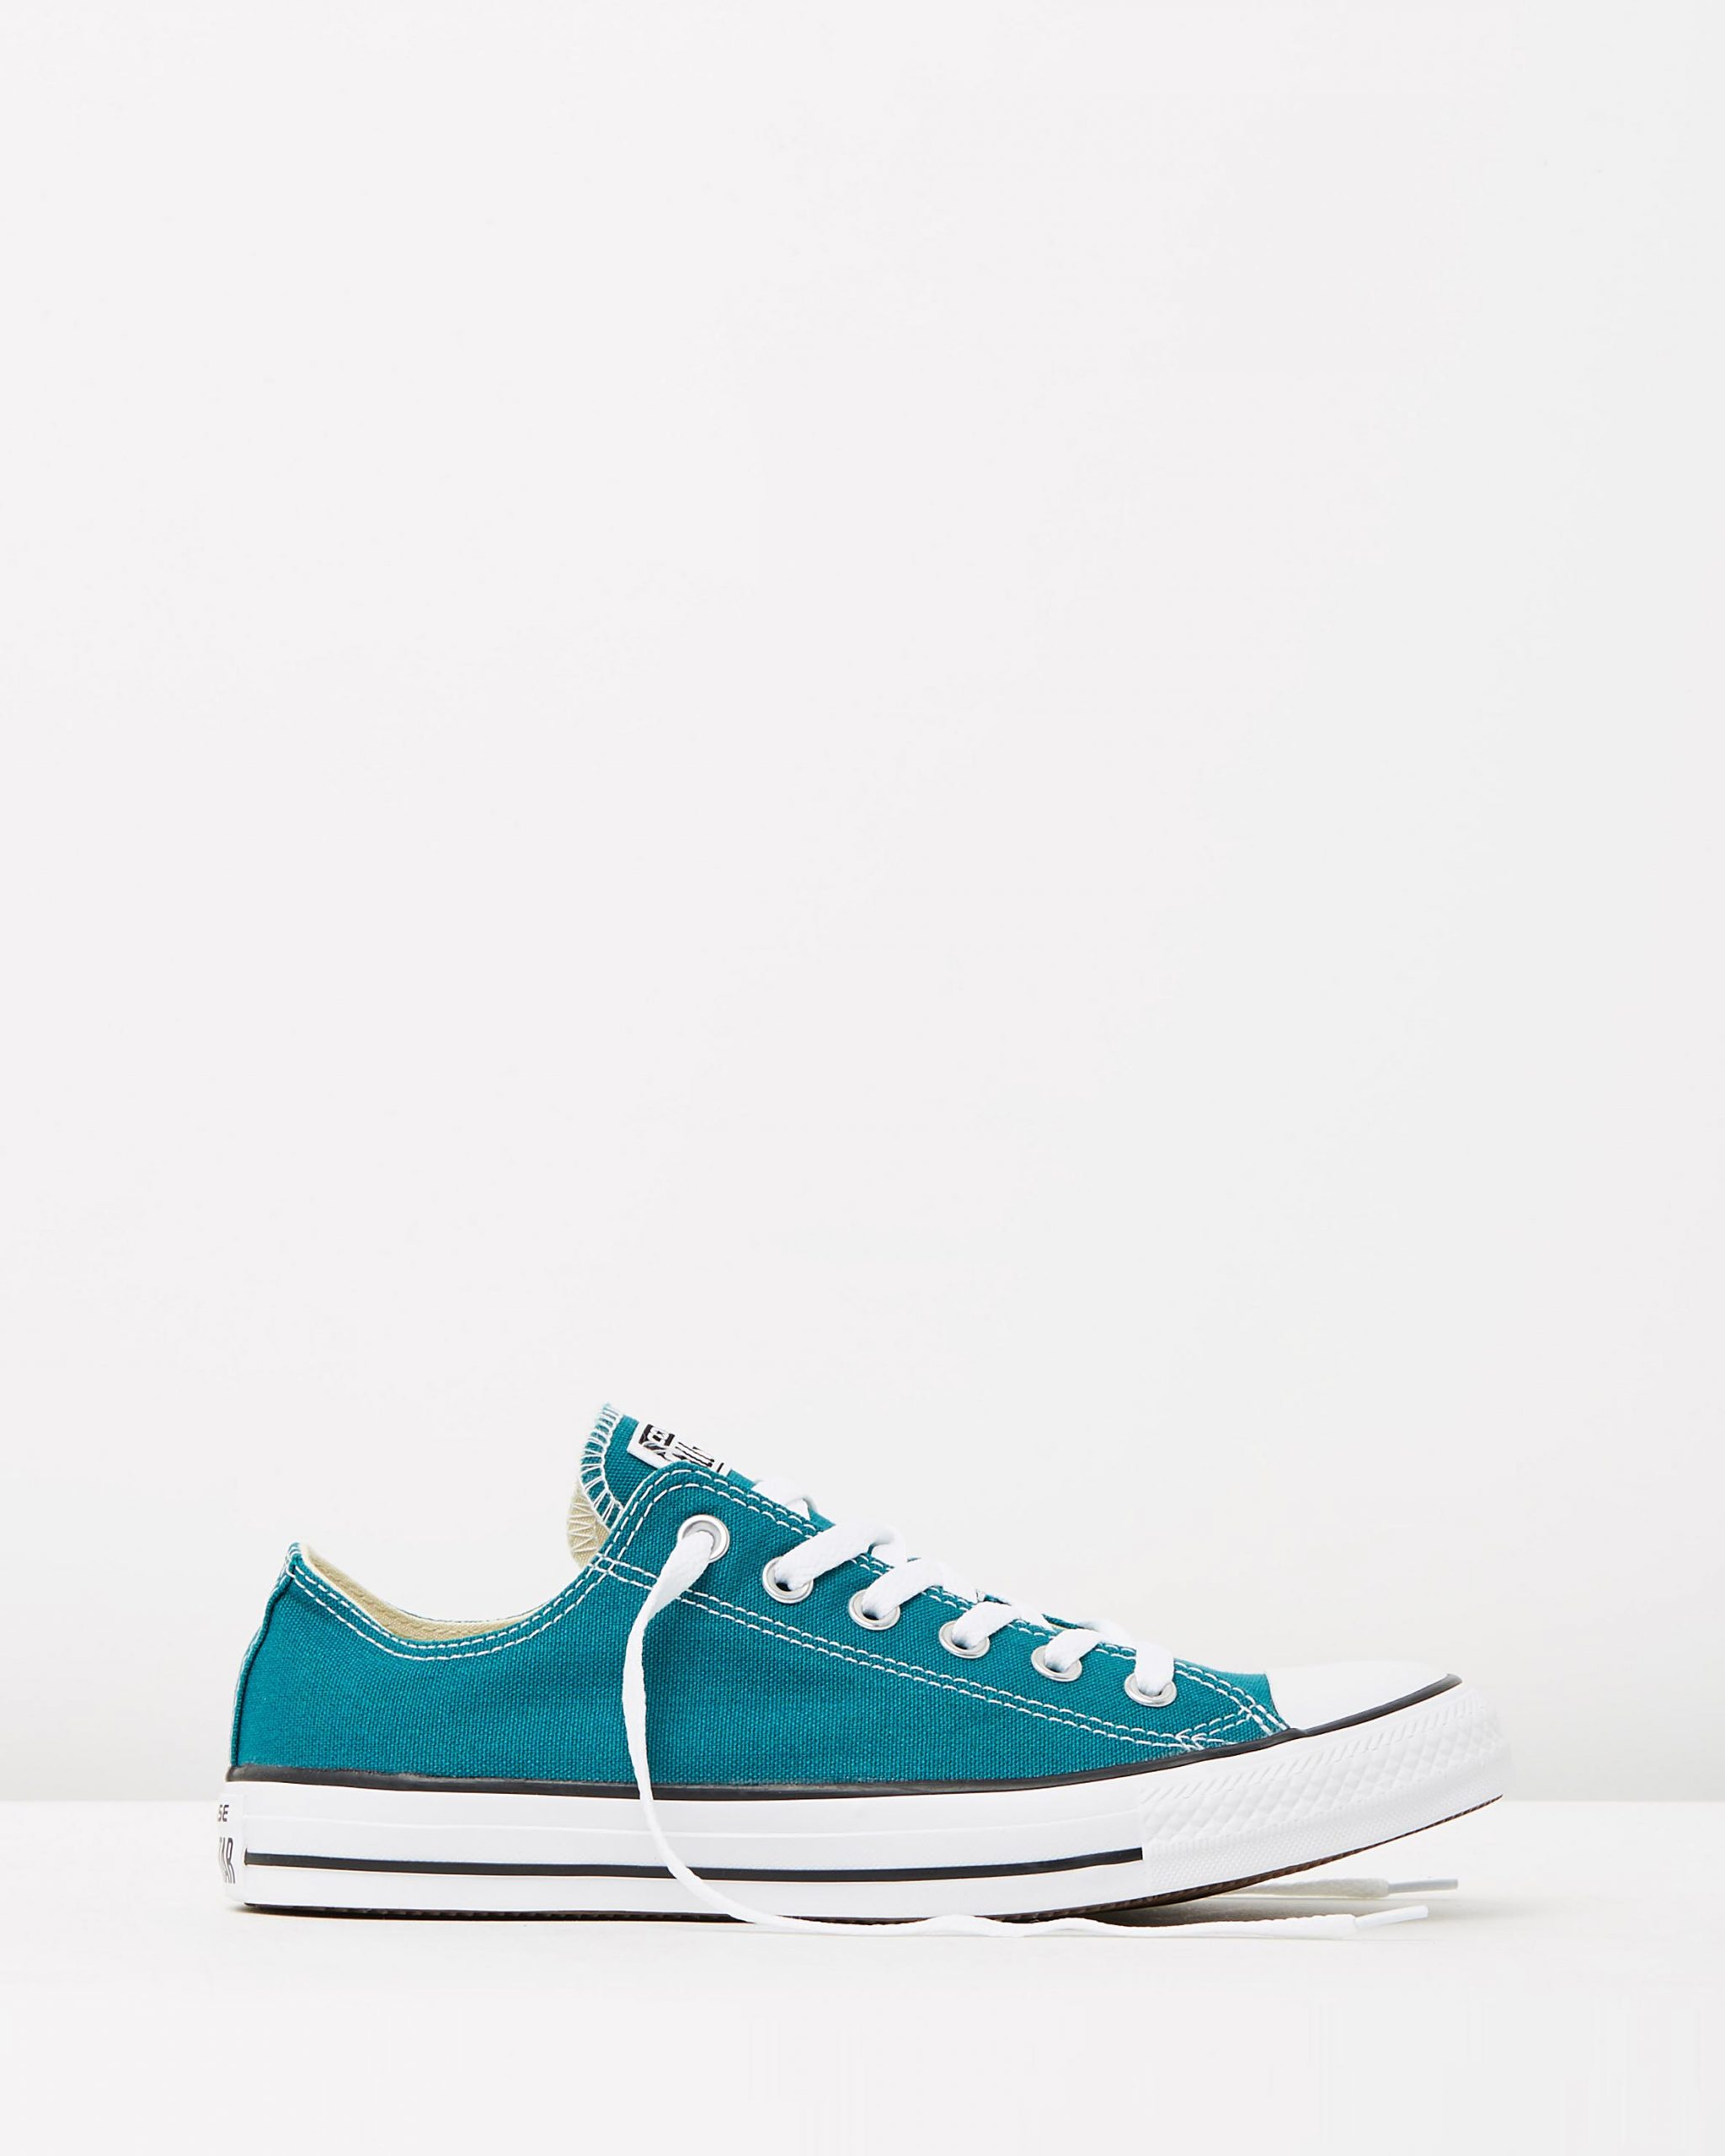 Converse Chuck Taylor All Star Teal